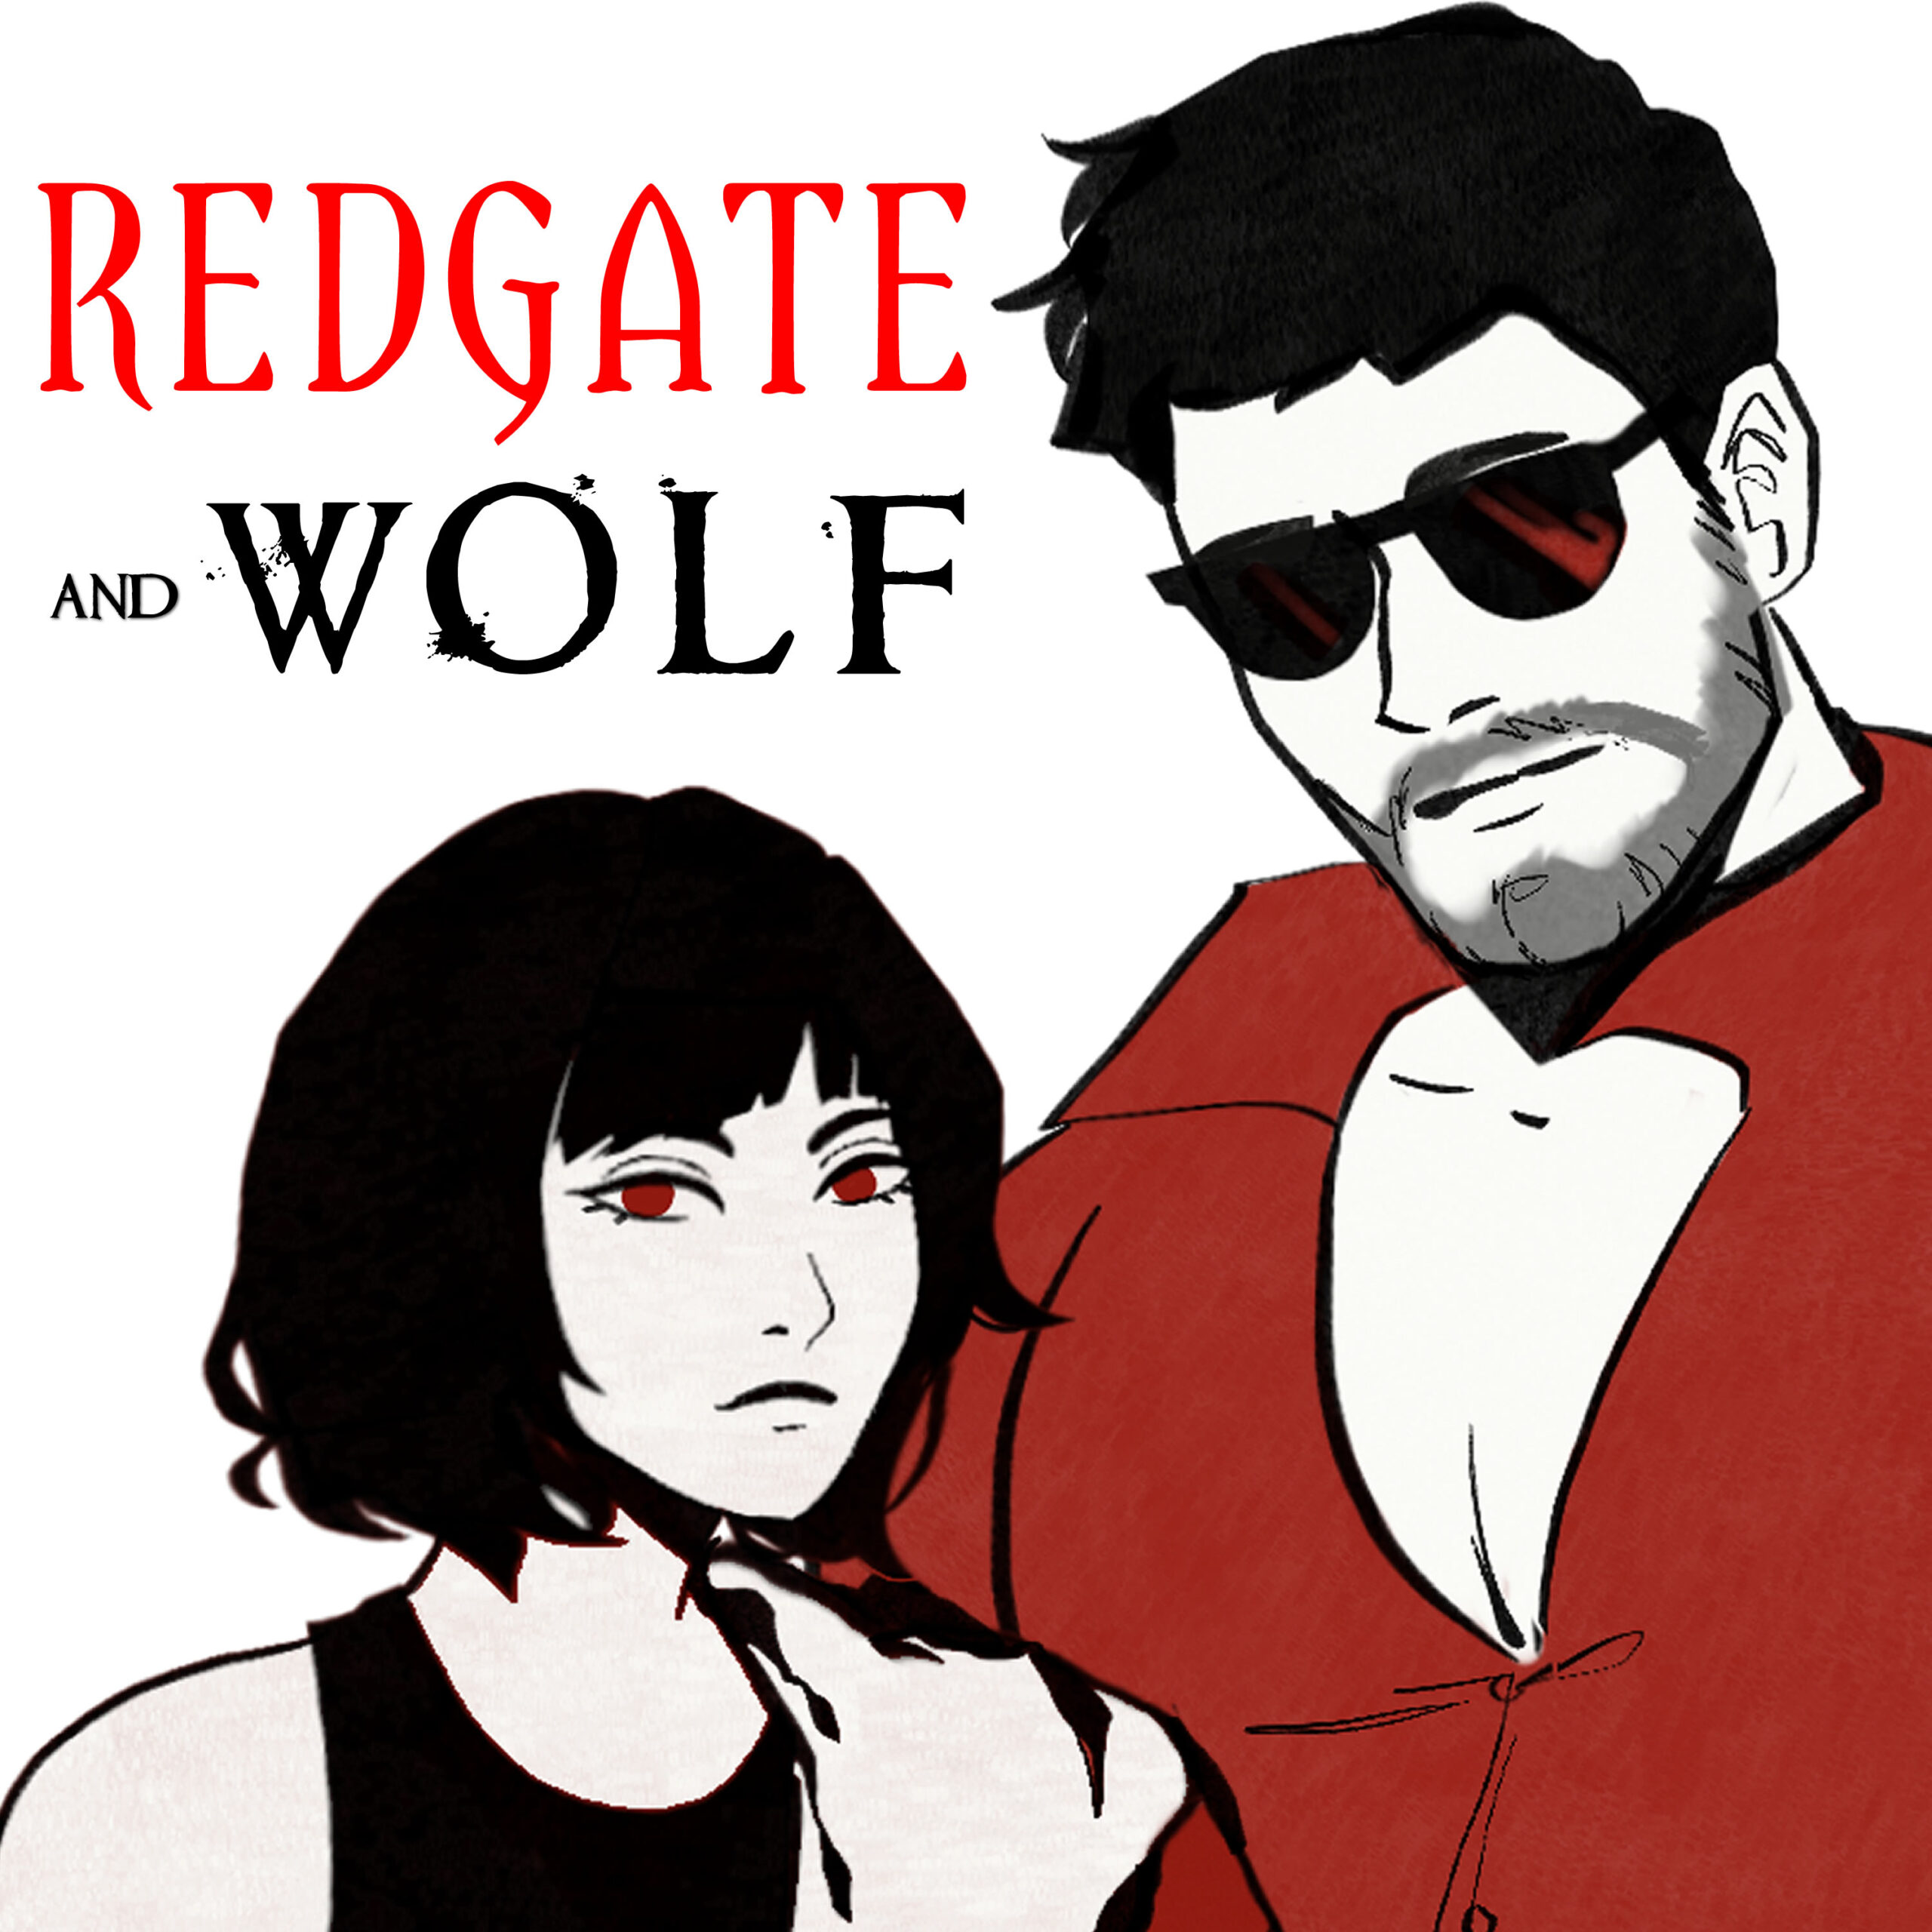 Image of an album cover depicting a serious, dark-haired woman, with a man in dark glasses. Text reads: Redgate and Wolf